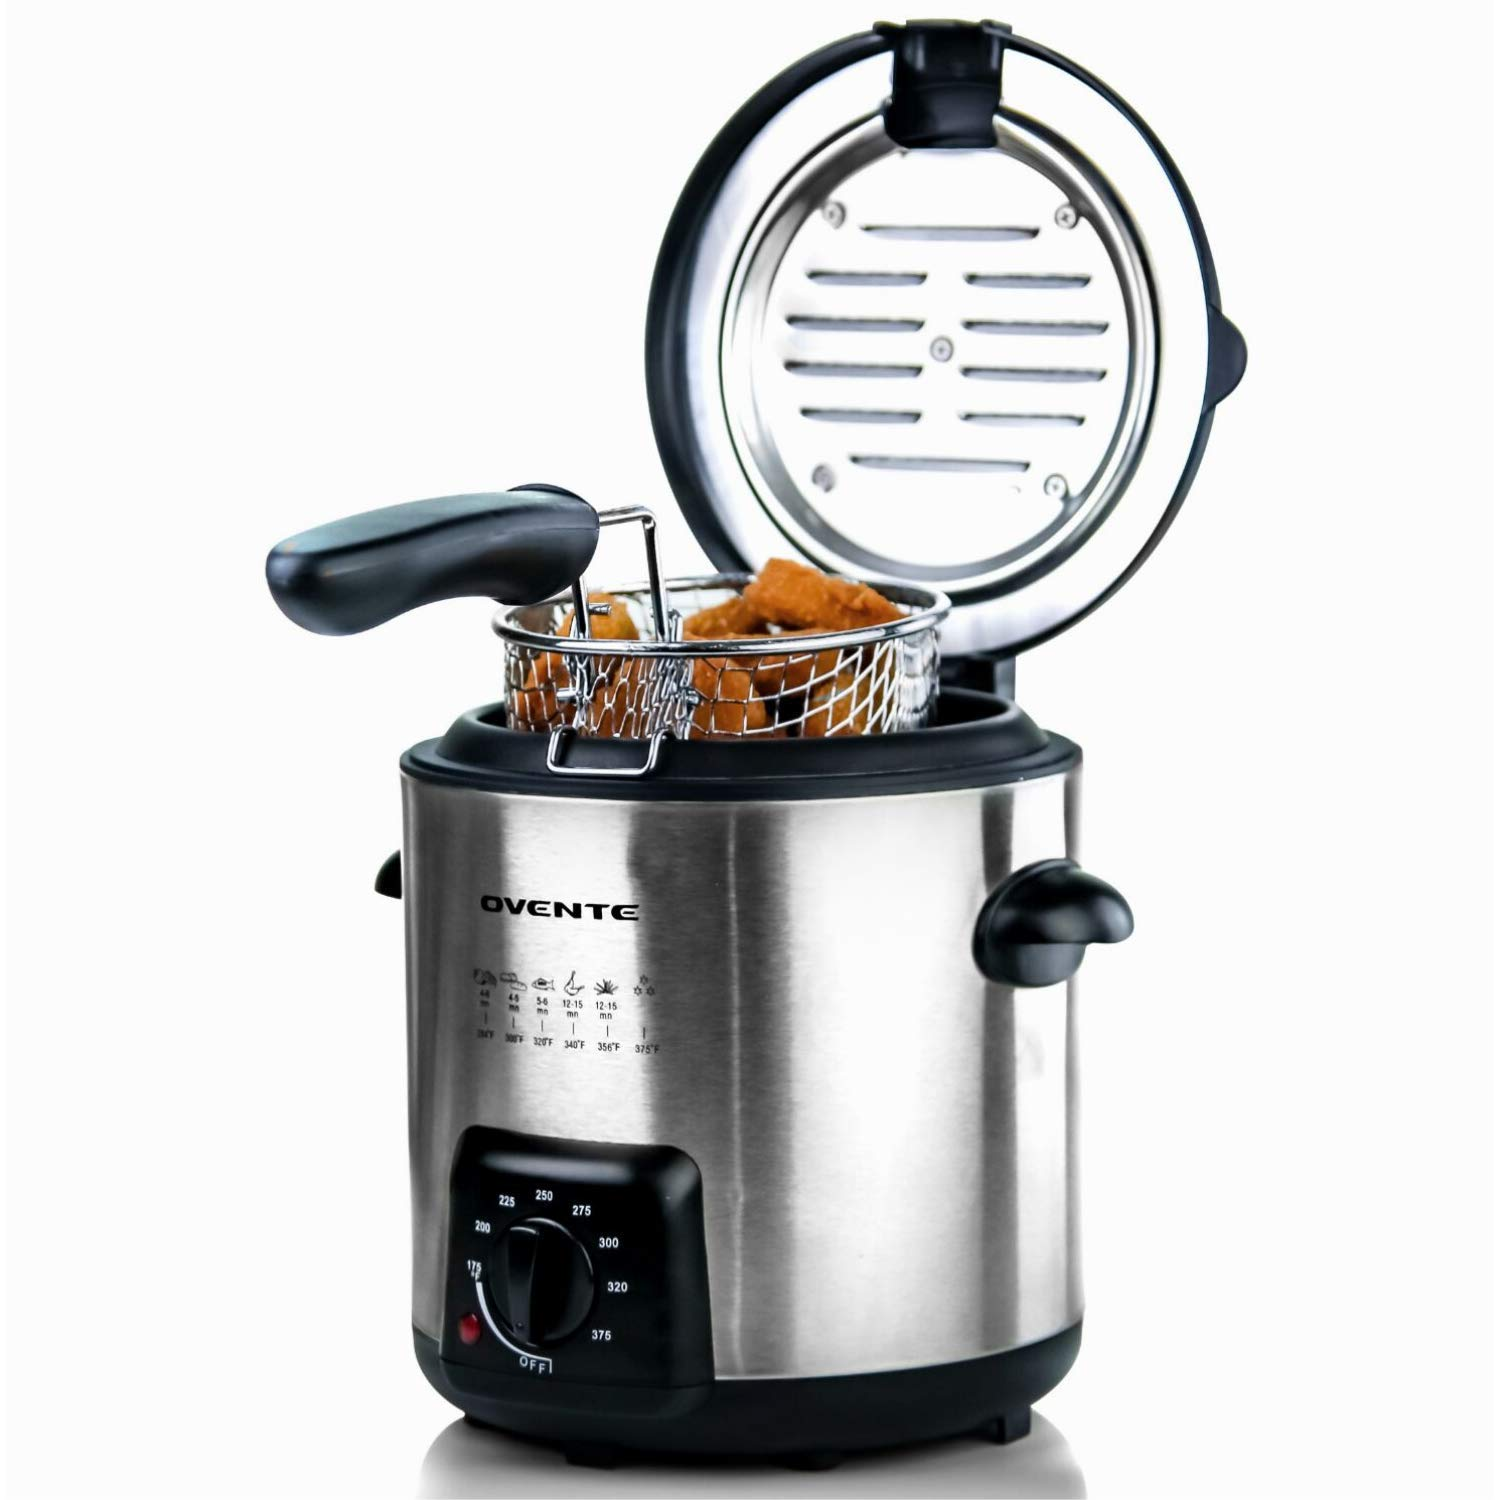 Ovente Electric Deep Fryer with 0.9 Liter Removable Stainless Steel Basket and Adjustable Temperature Control